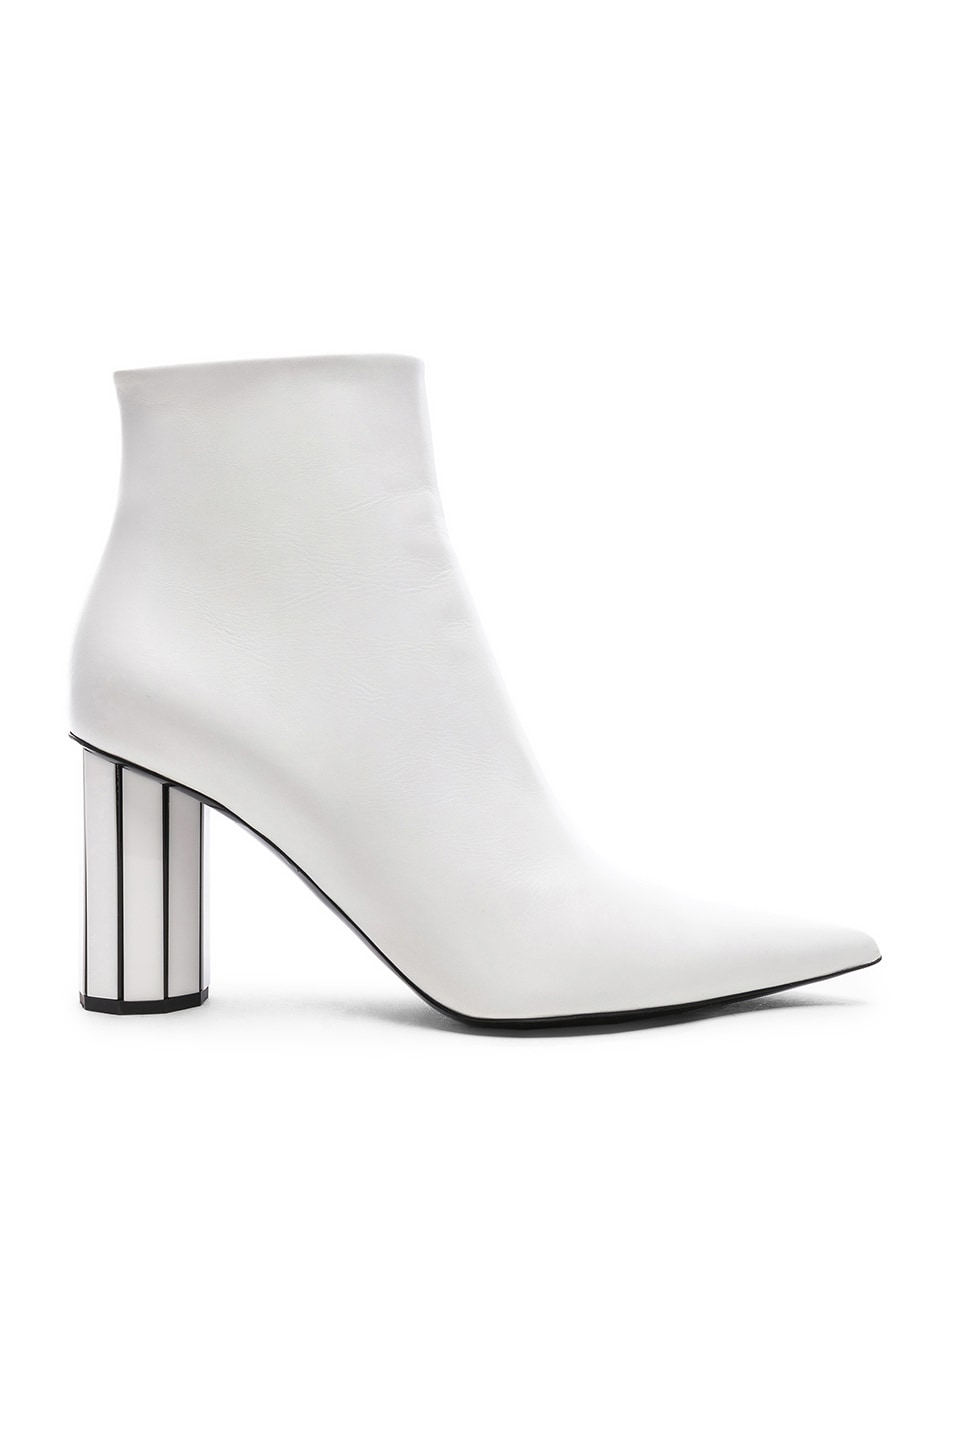 Image 1 of Proenza Schouler Mirror Heel Ankle Boots in White